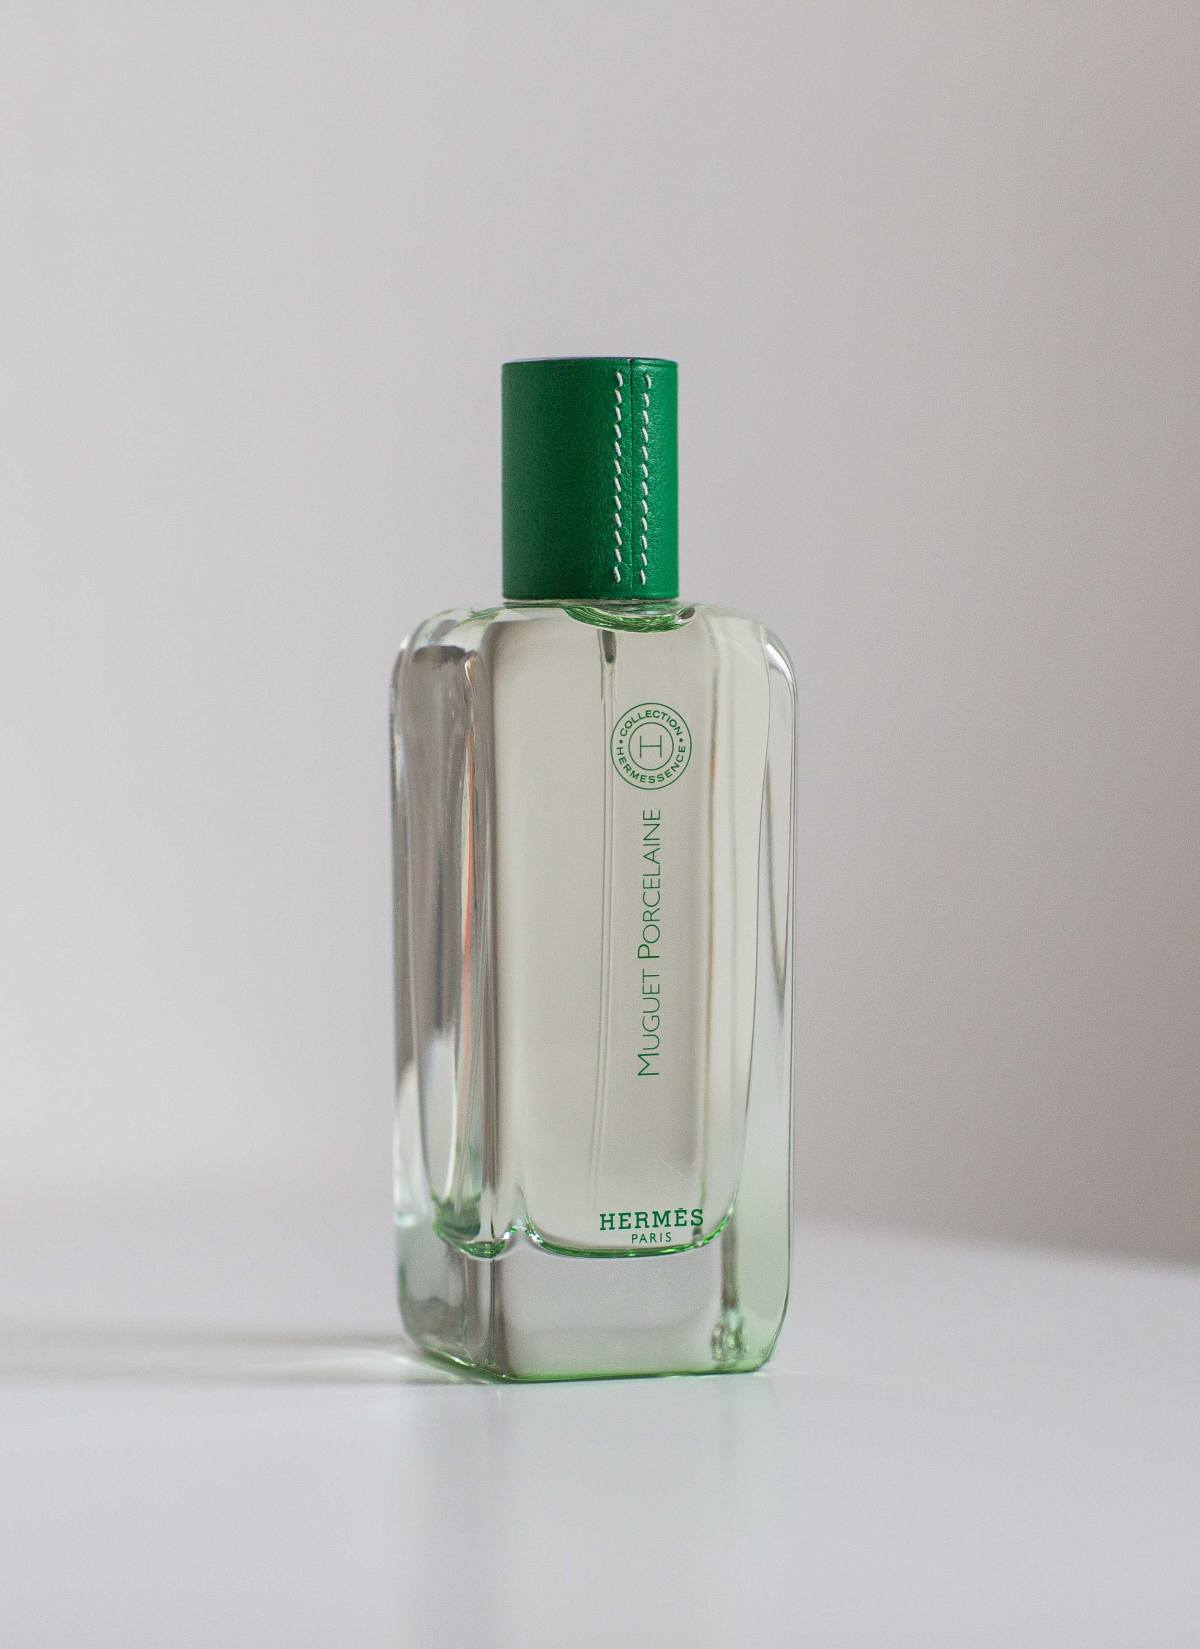 Muguet Porcelaine, Hermes, Hermessence, lily of the valley, fragrance, духи, ландыш, эрмес